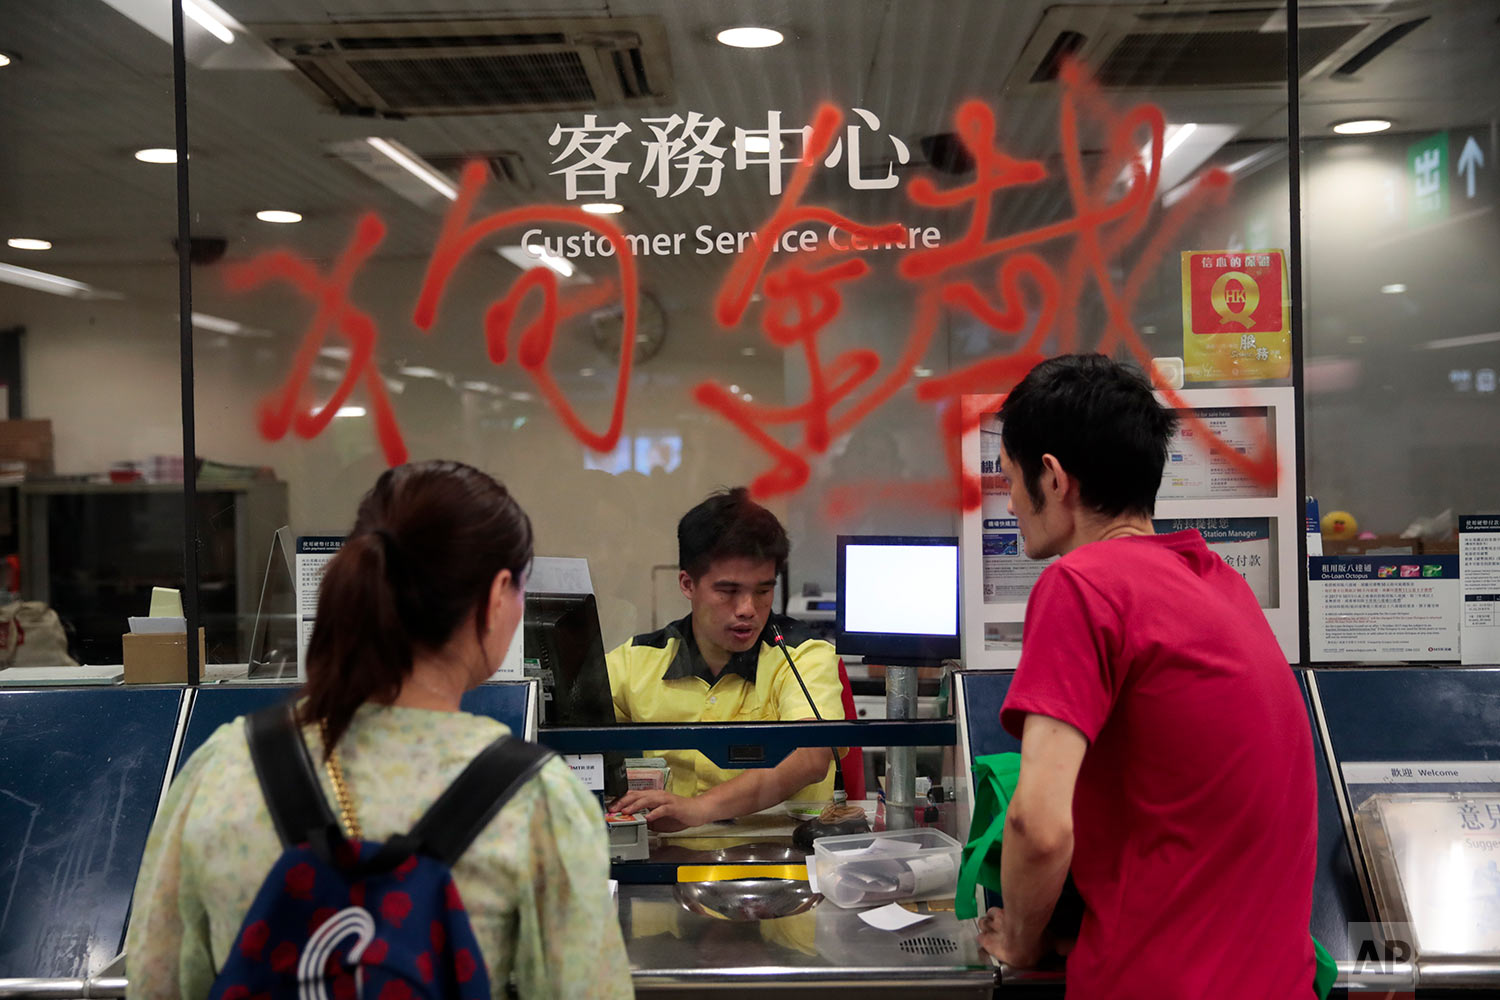 People purchase subway tickets from a vandalized customer center in Hong Kong, Aug. 31, 2019. (AP Photo/Jae C. Hong)